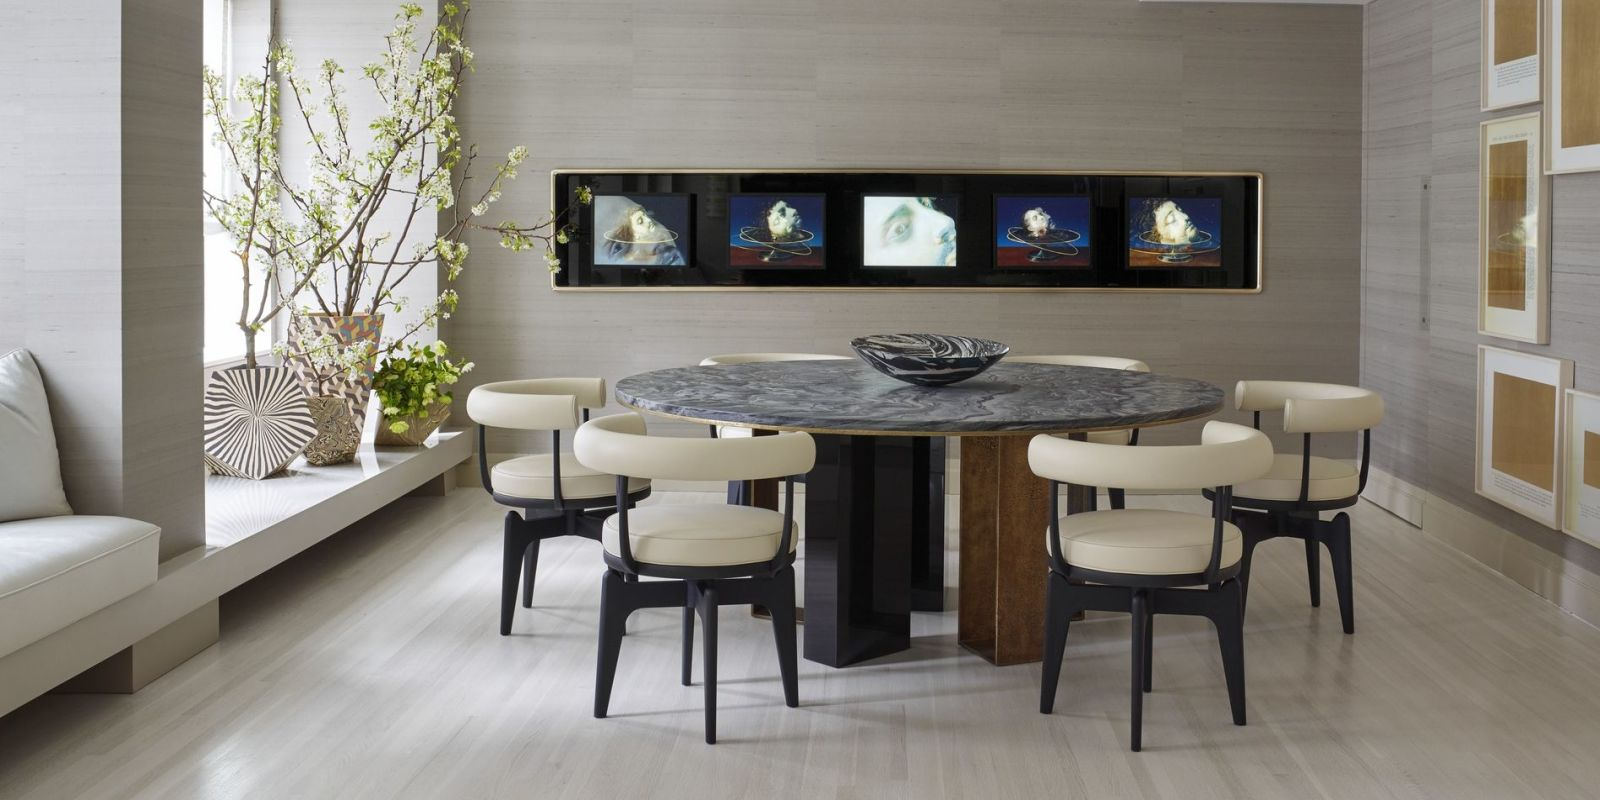 25 modern dining room decorating ideas contemporary for Modern dinning room table